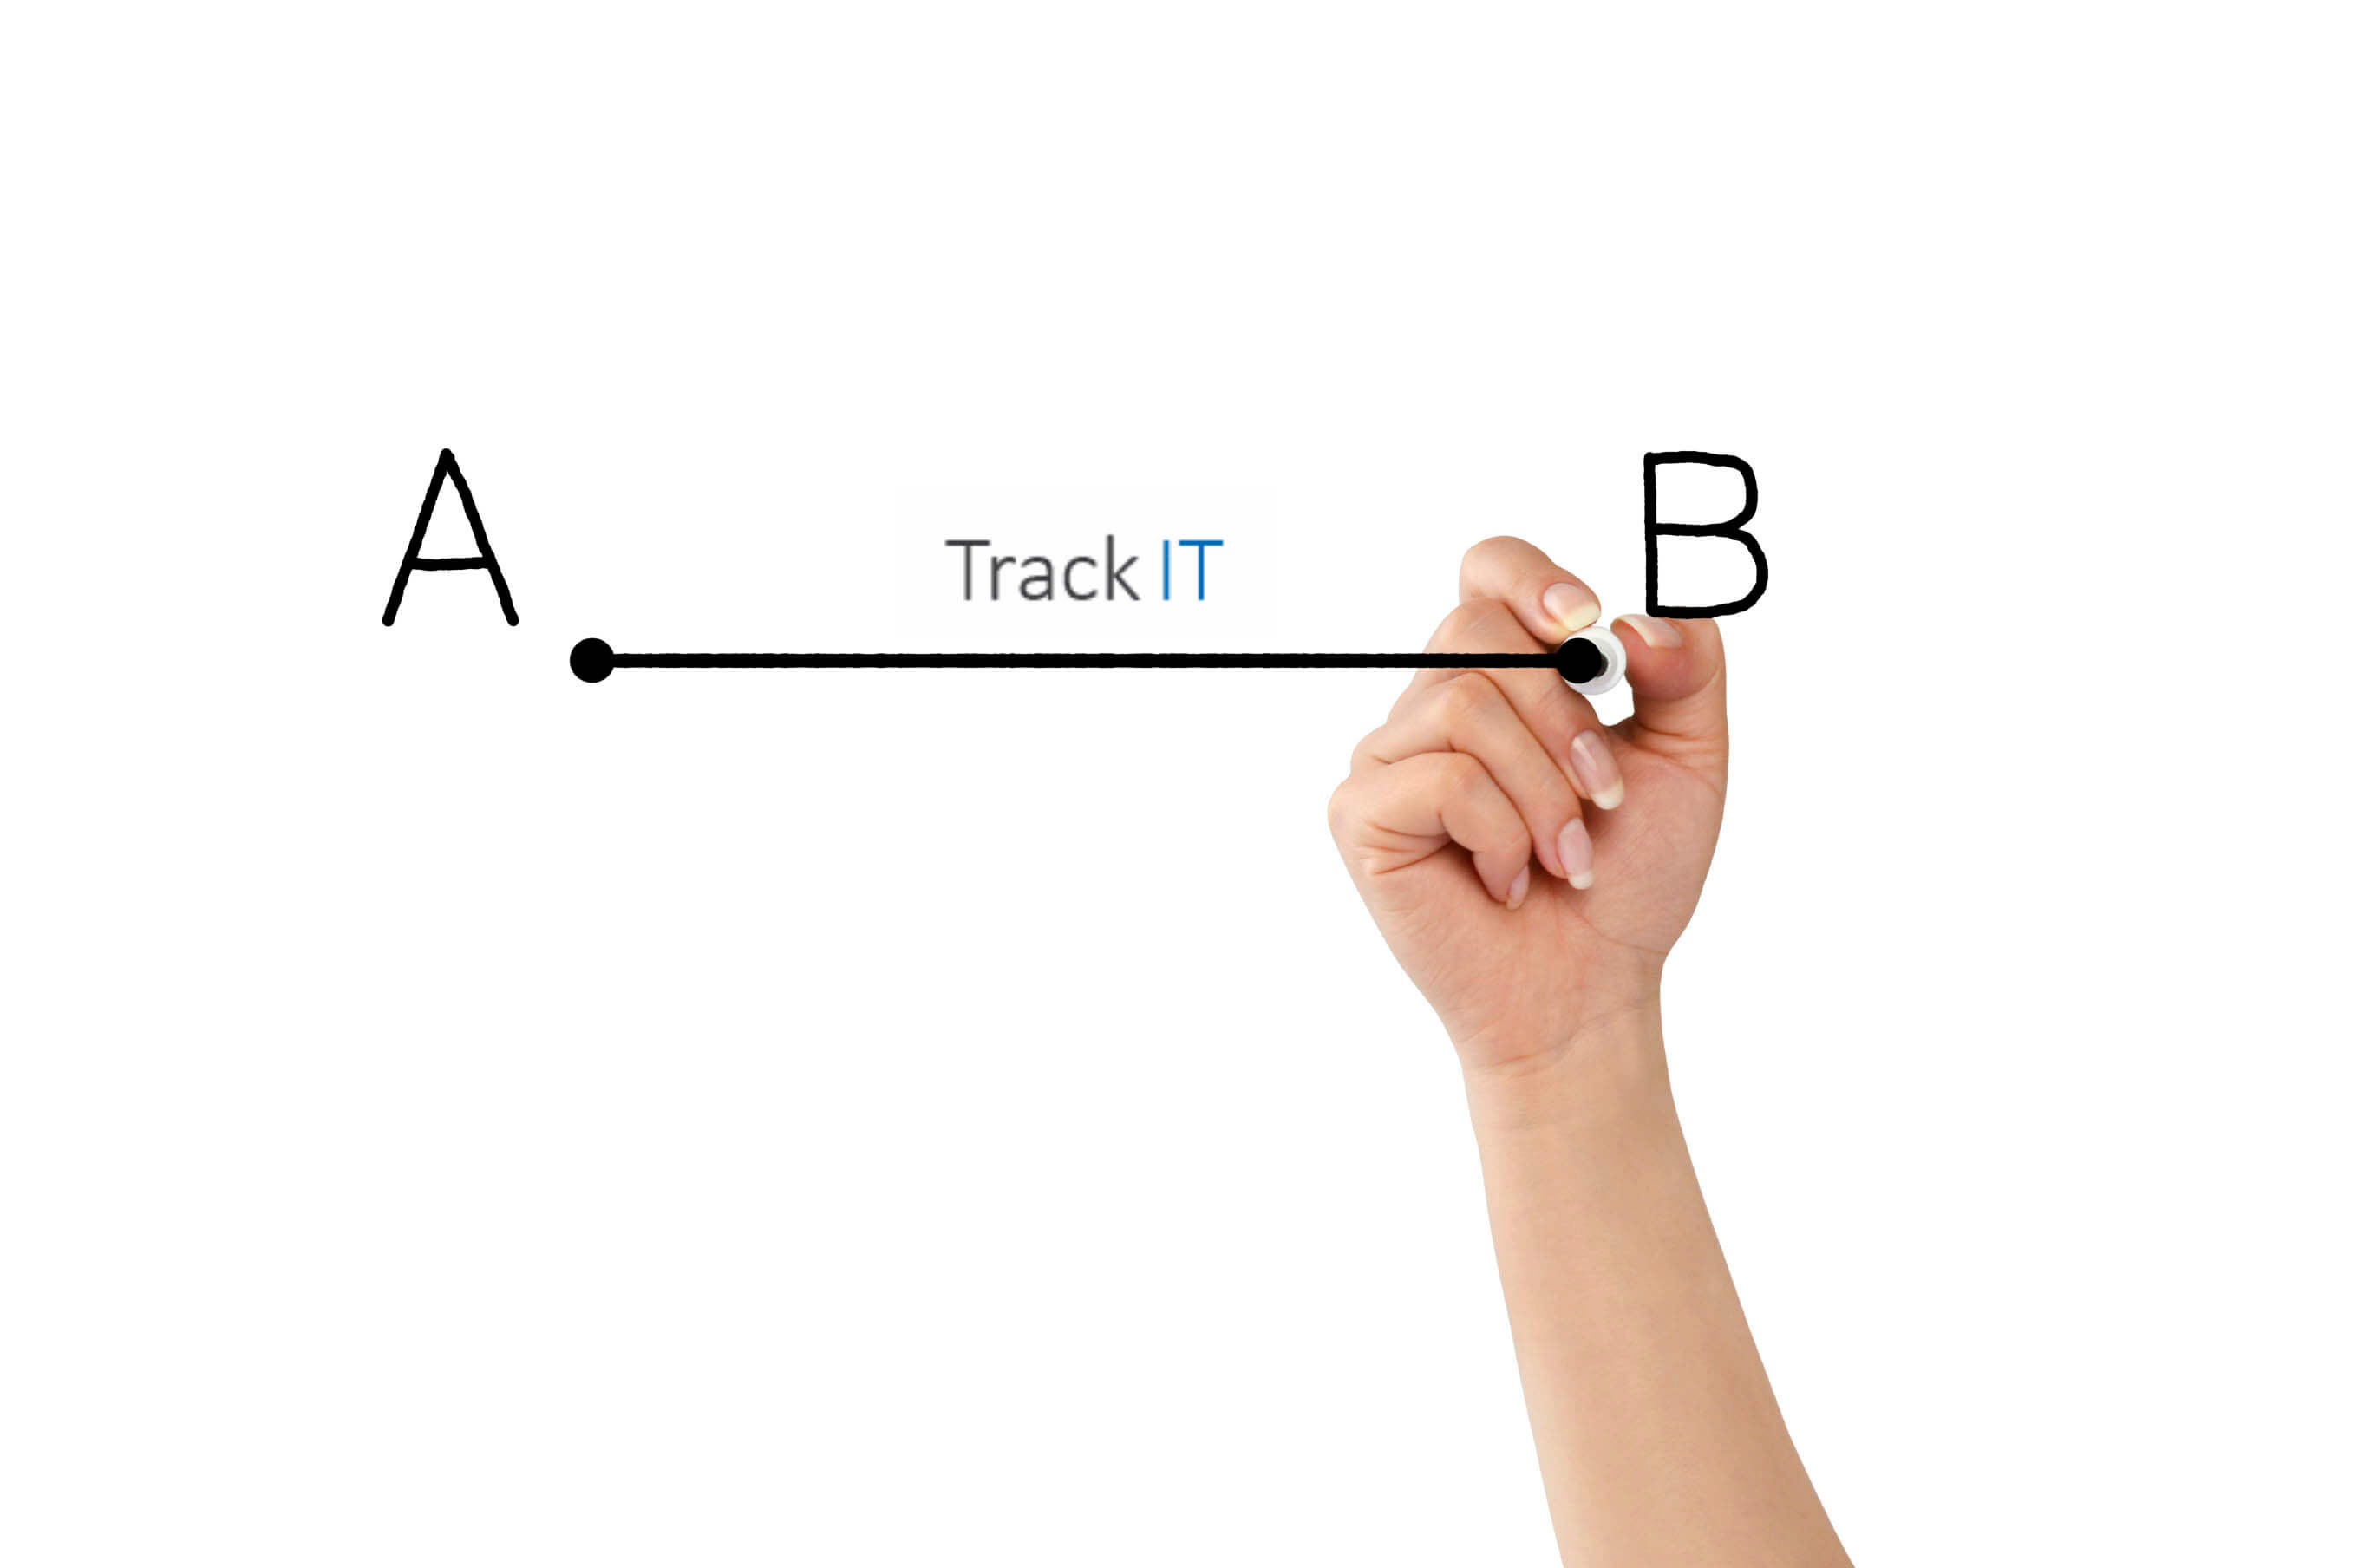 ITS_Intelligent_Transport-TrackIT